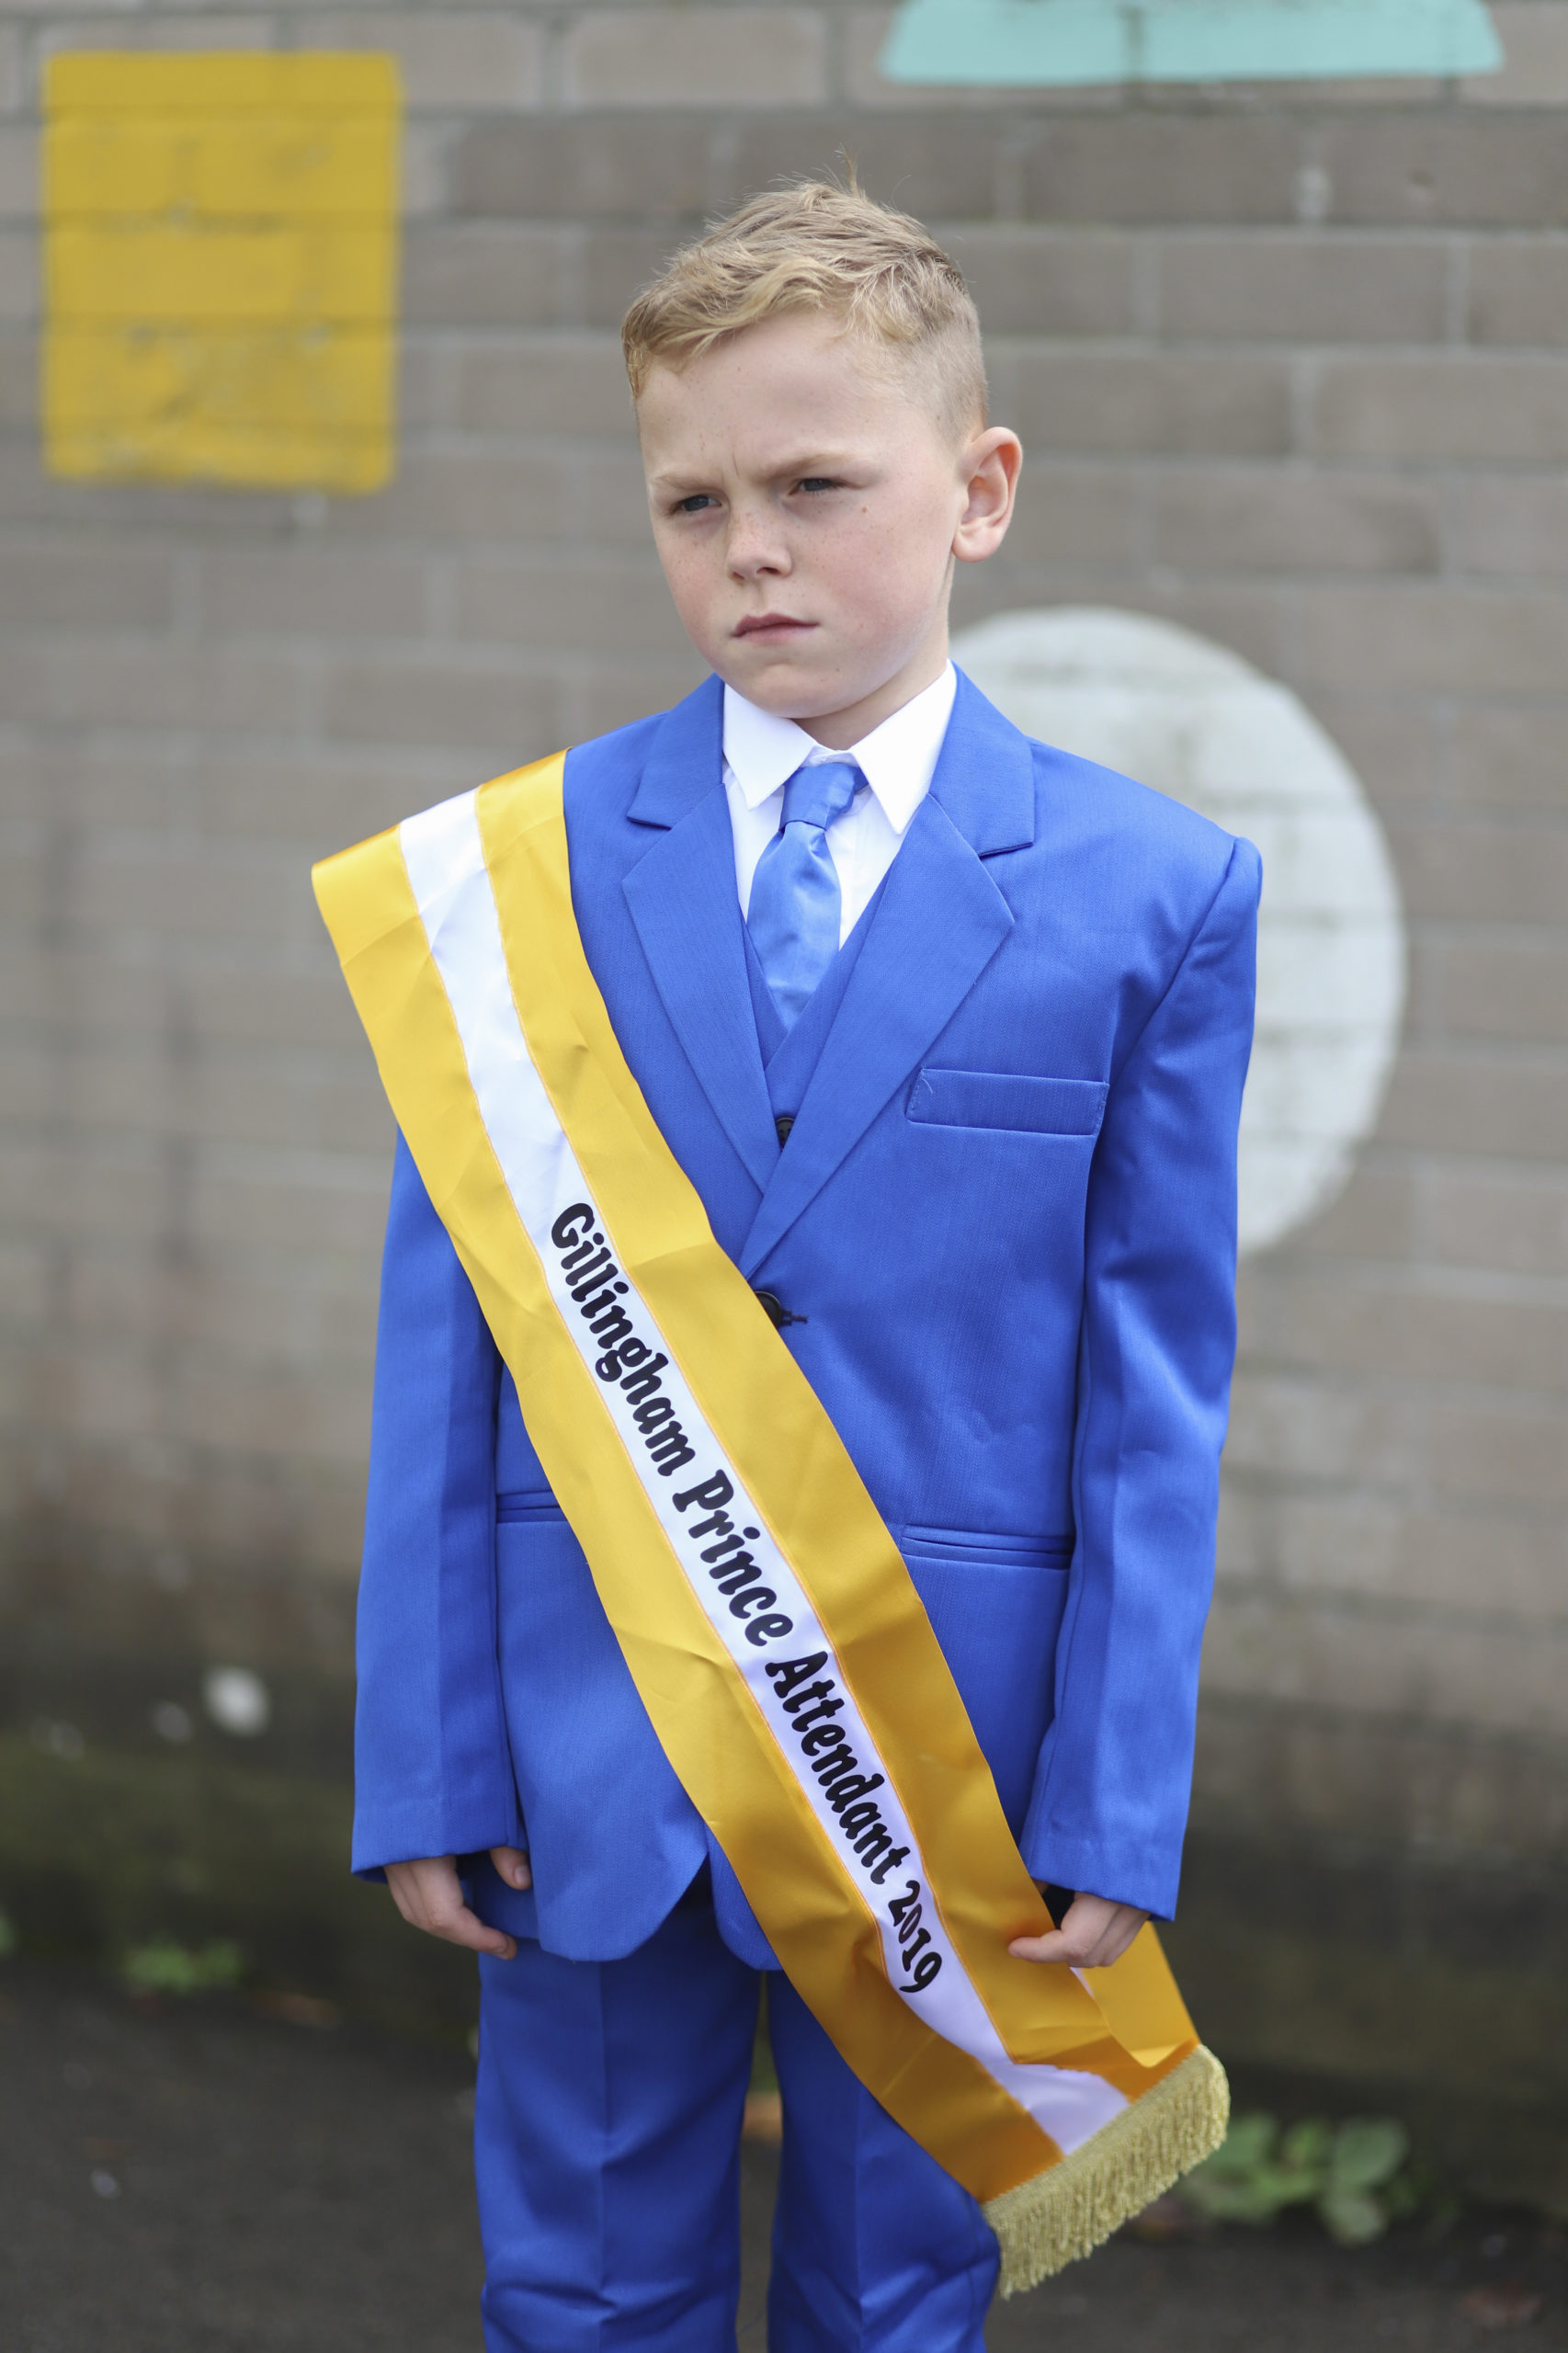 Rory, Carnival Prince Attendant